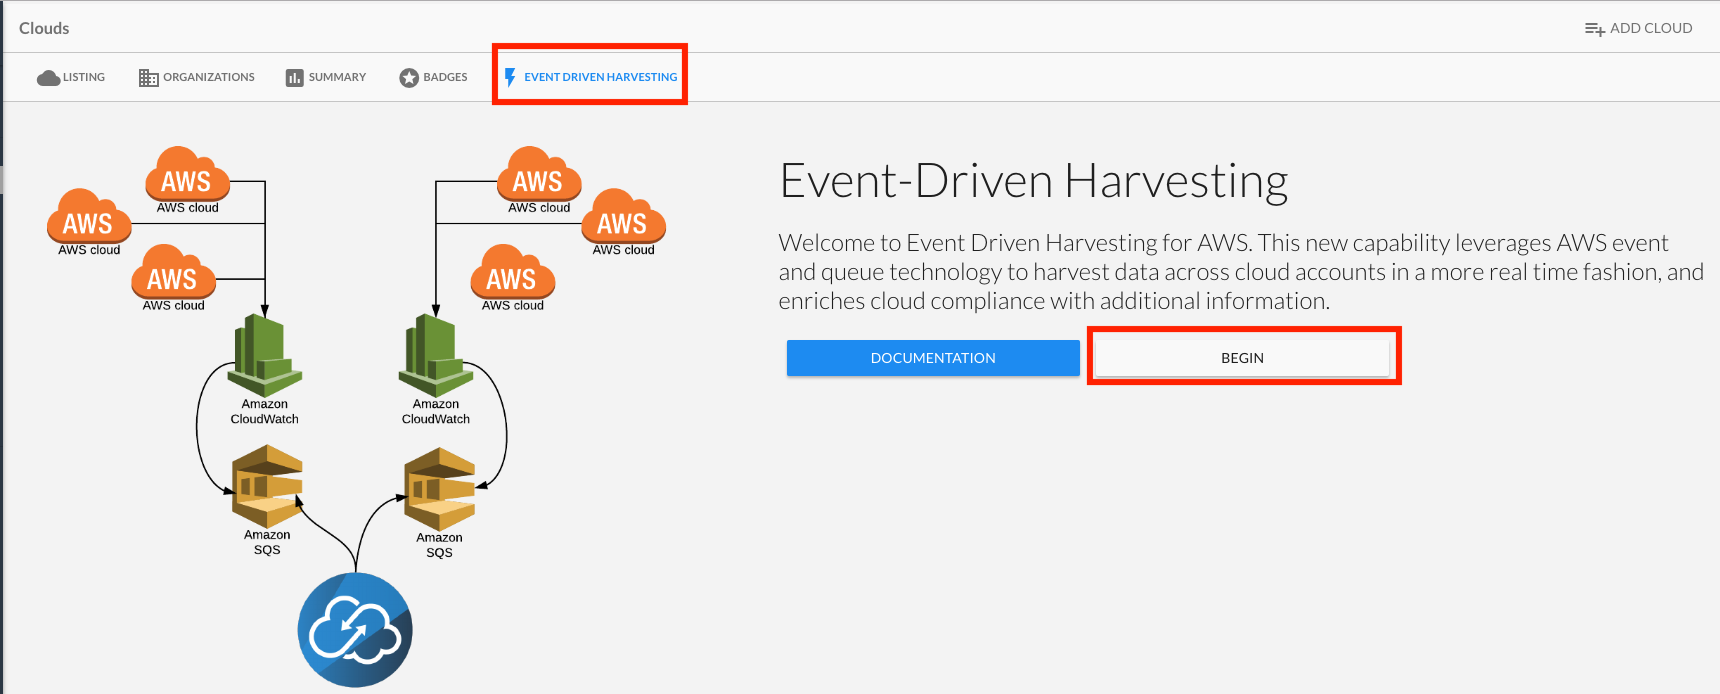 Event Driven Harvesting (AWS)